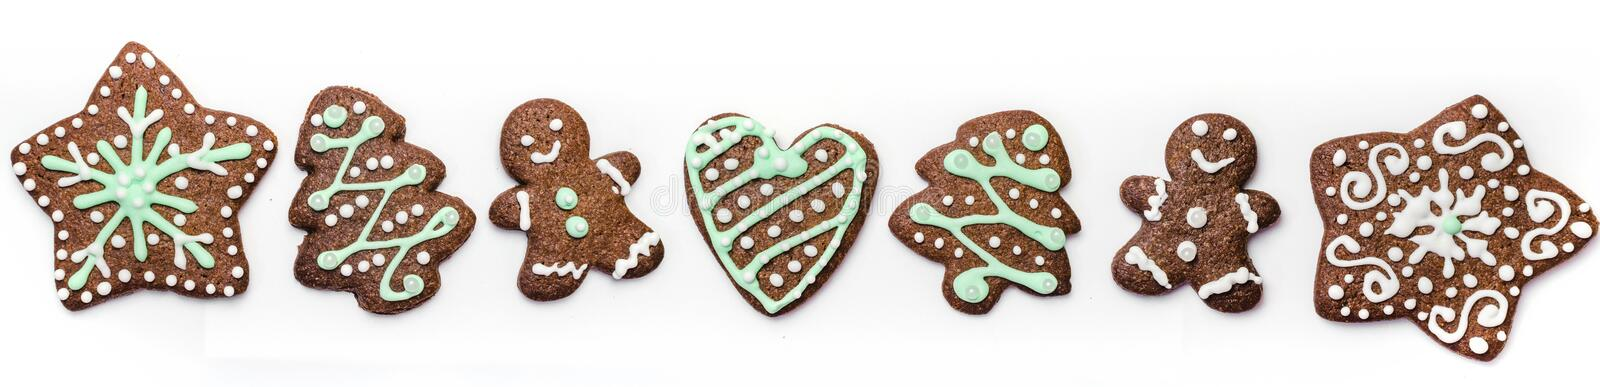 Gingerbread cookies on white background. Snowflake, star, man, heart shapes. Top view Christmas background royalty free stock image